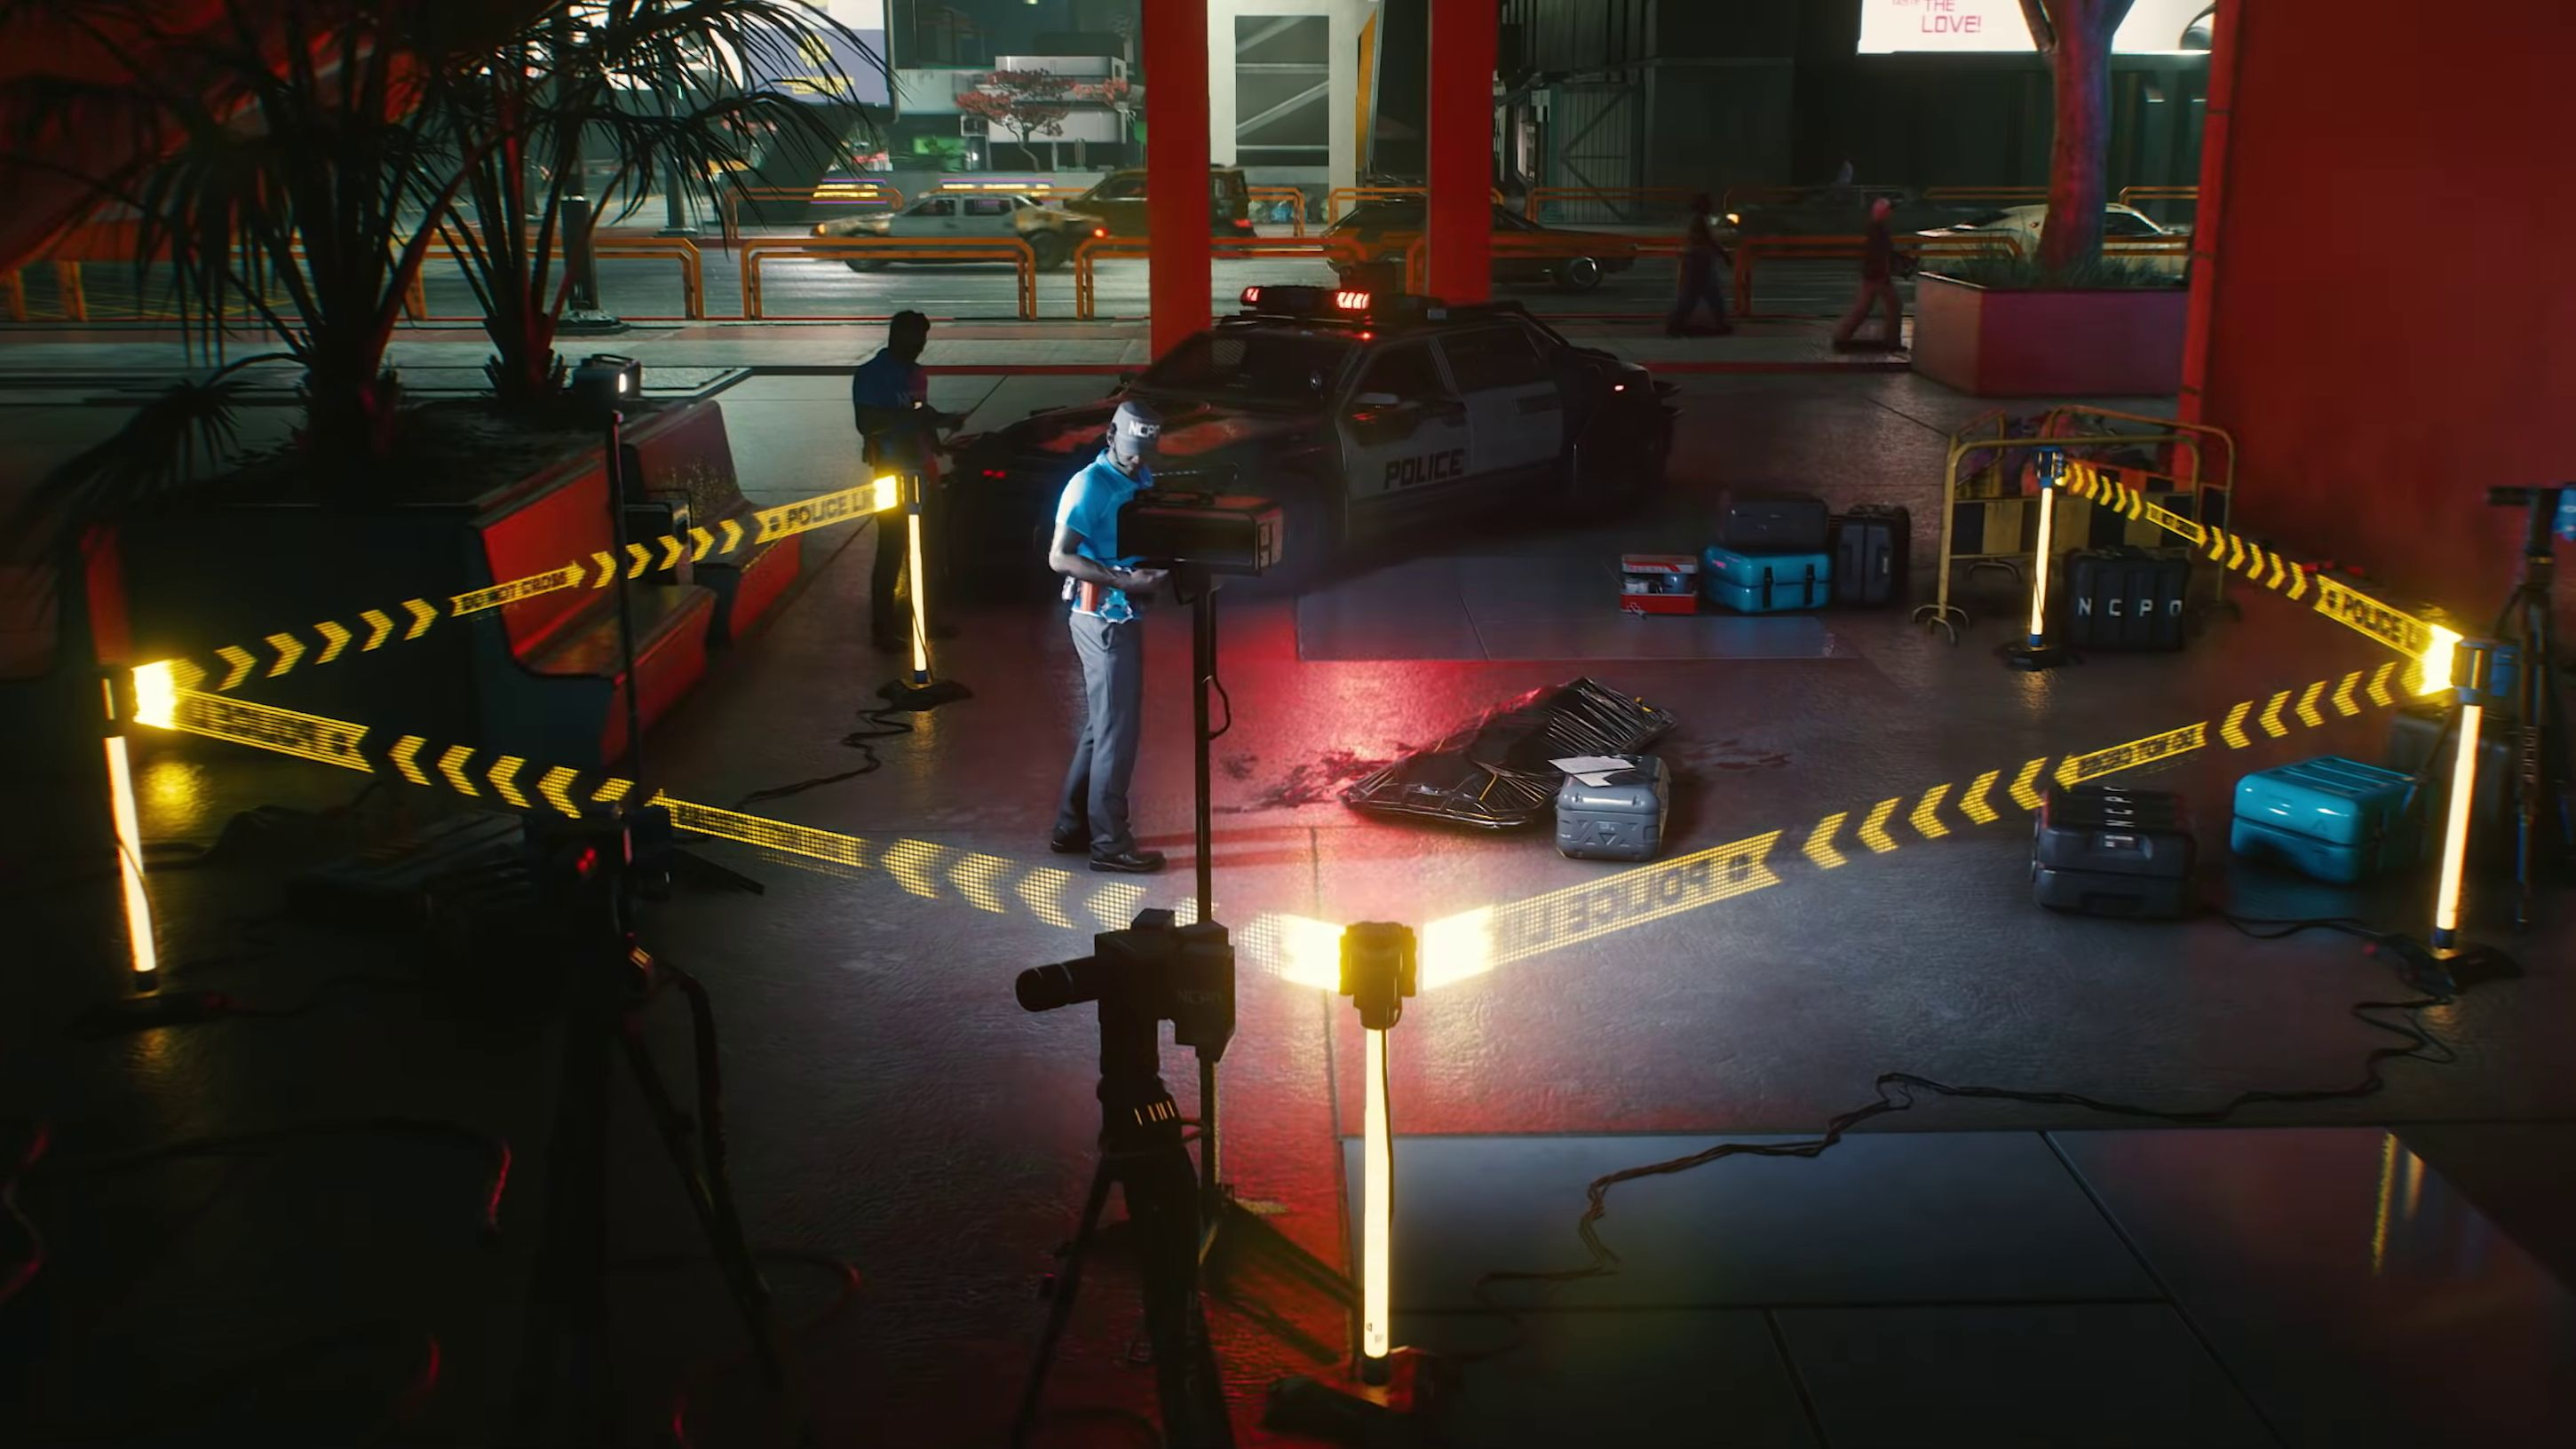 A screenshot from Cyberpunk 2077's gangs trailer showing some CYBERCOPS walking around a crime scene. There is a body bag and holographic police tape.